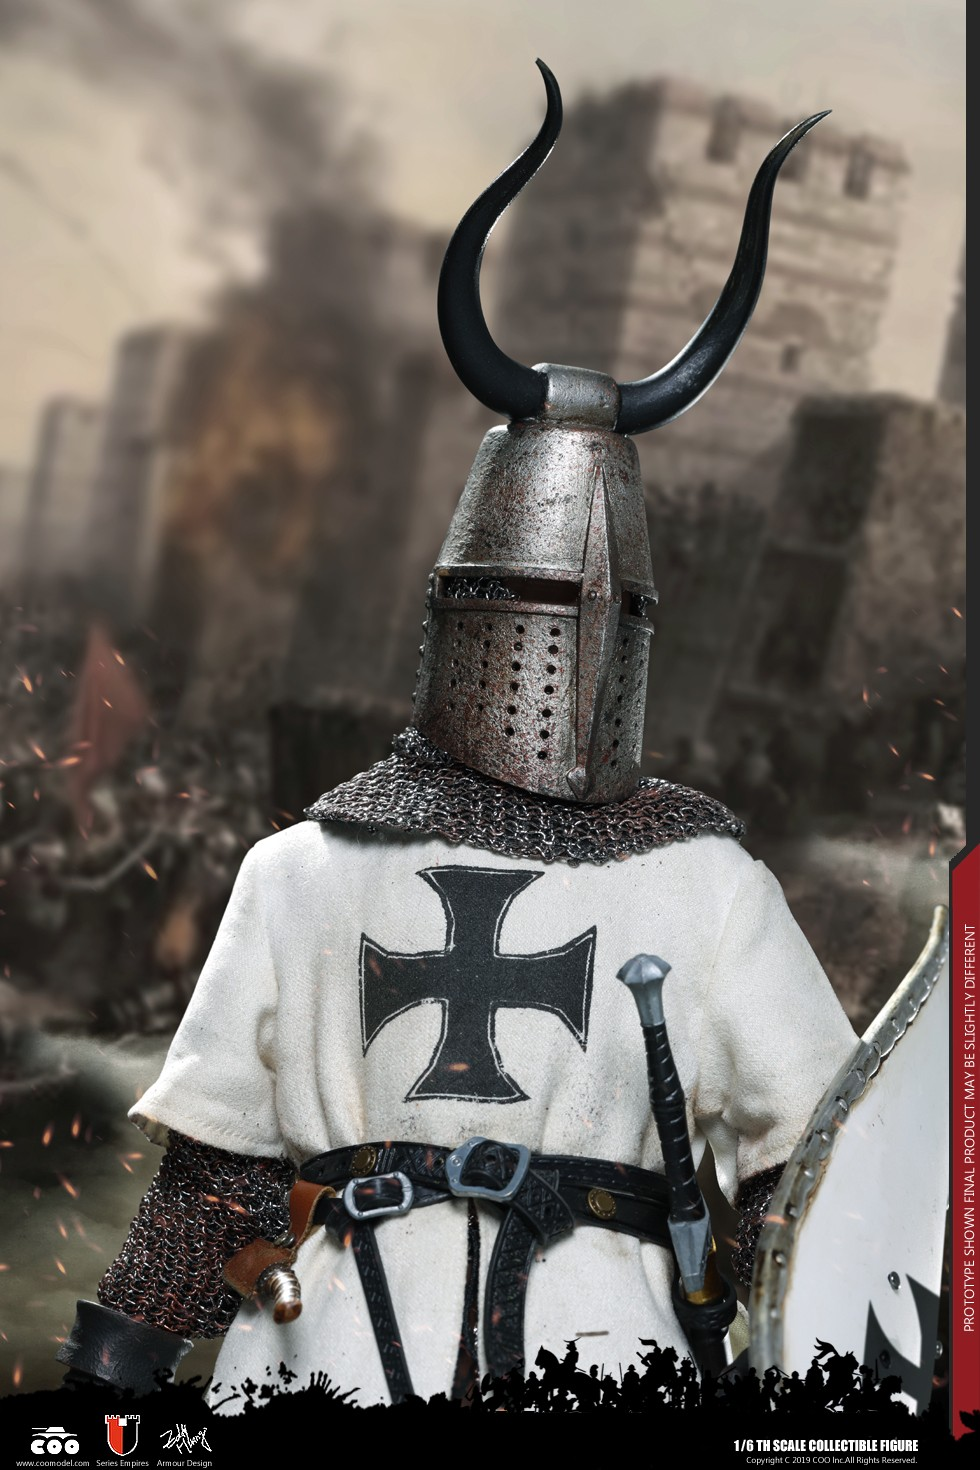 CooModel - NEW PRODUCT: COOMODEL: 1/6 Empire Series (Alloy Die Casting) - Crusader Helmet (Three Helmet Set) NO.SE059 00521610